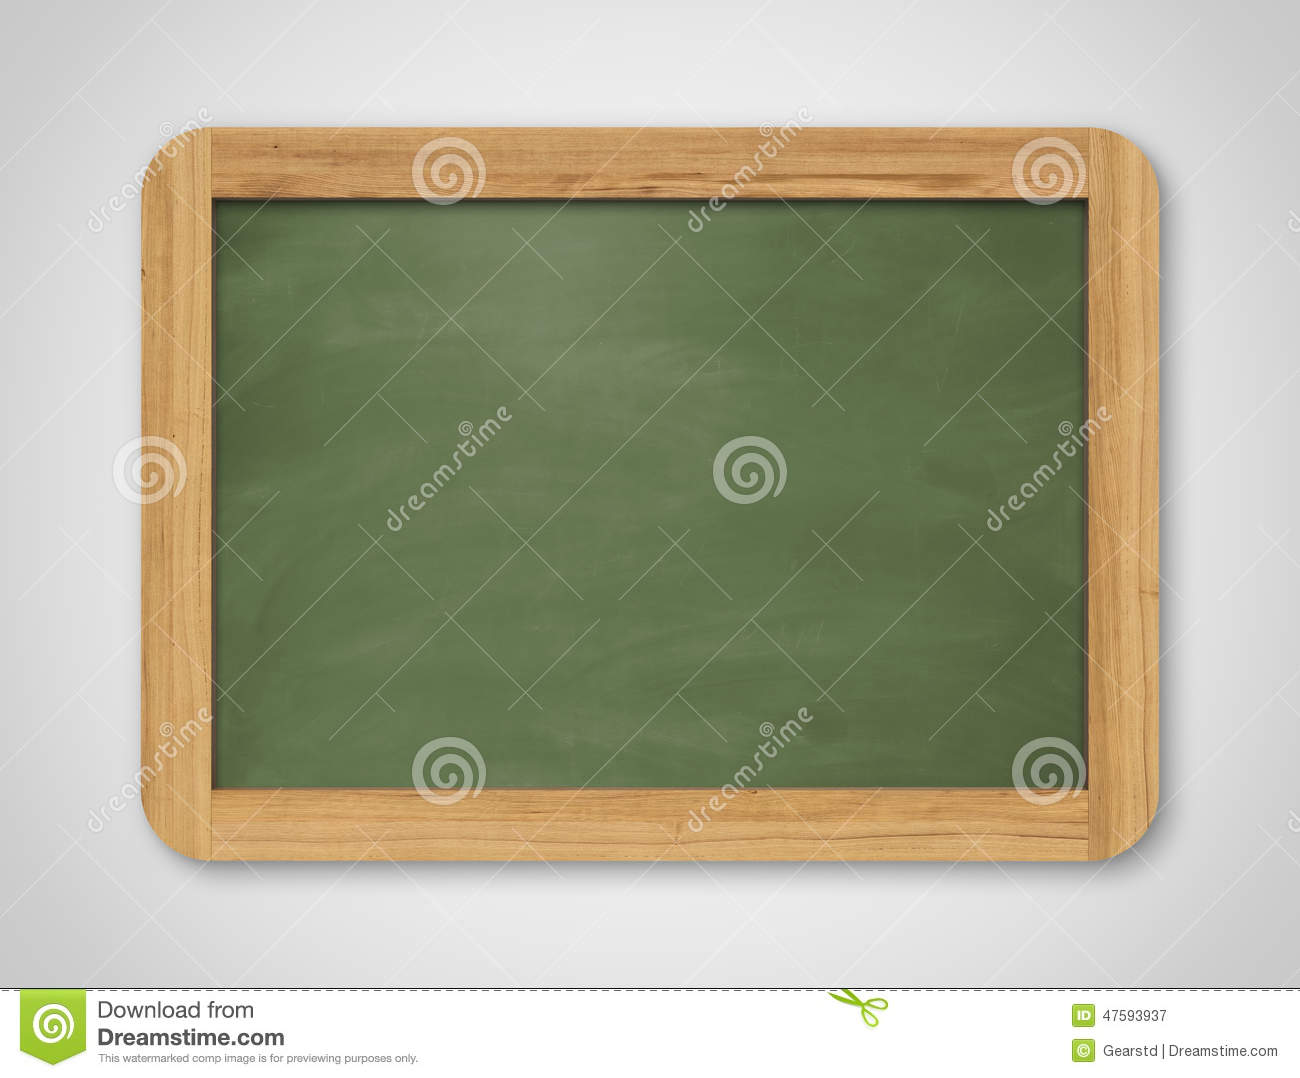 Download Blank Green Chalkboard Background And Texture Stock Image